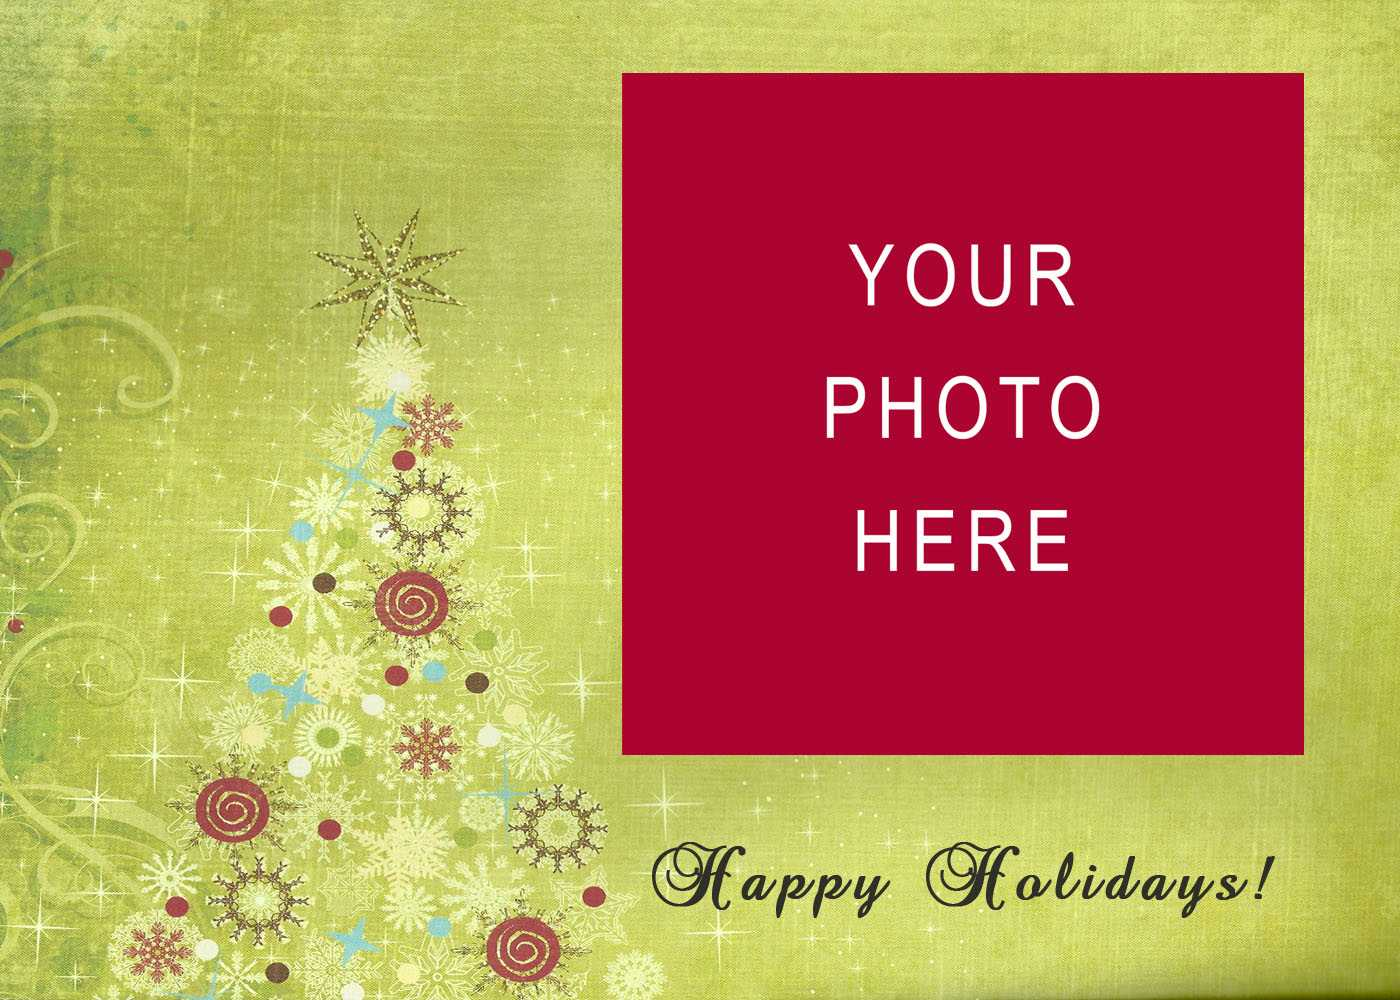 008 Christmas Card Templates Free Download Images In Photo With Regard To Christmas Photo Cards Templates Free Downloads